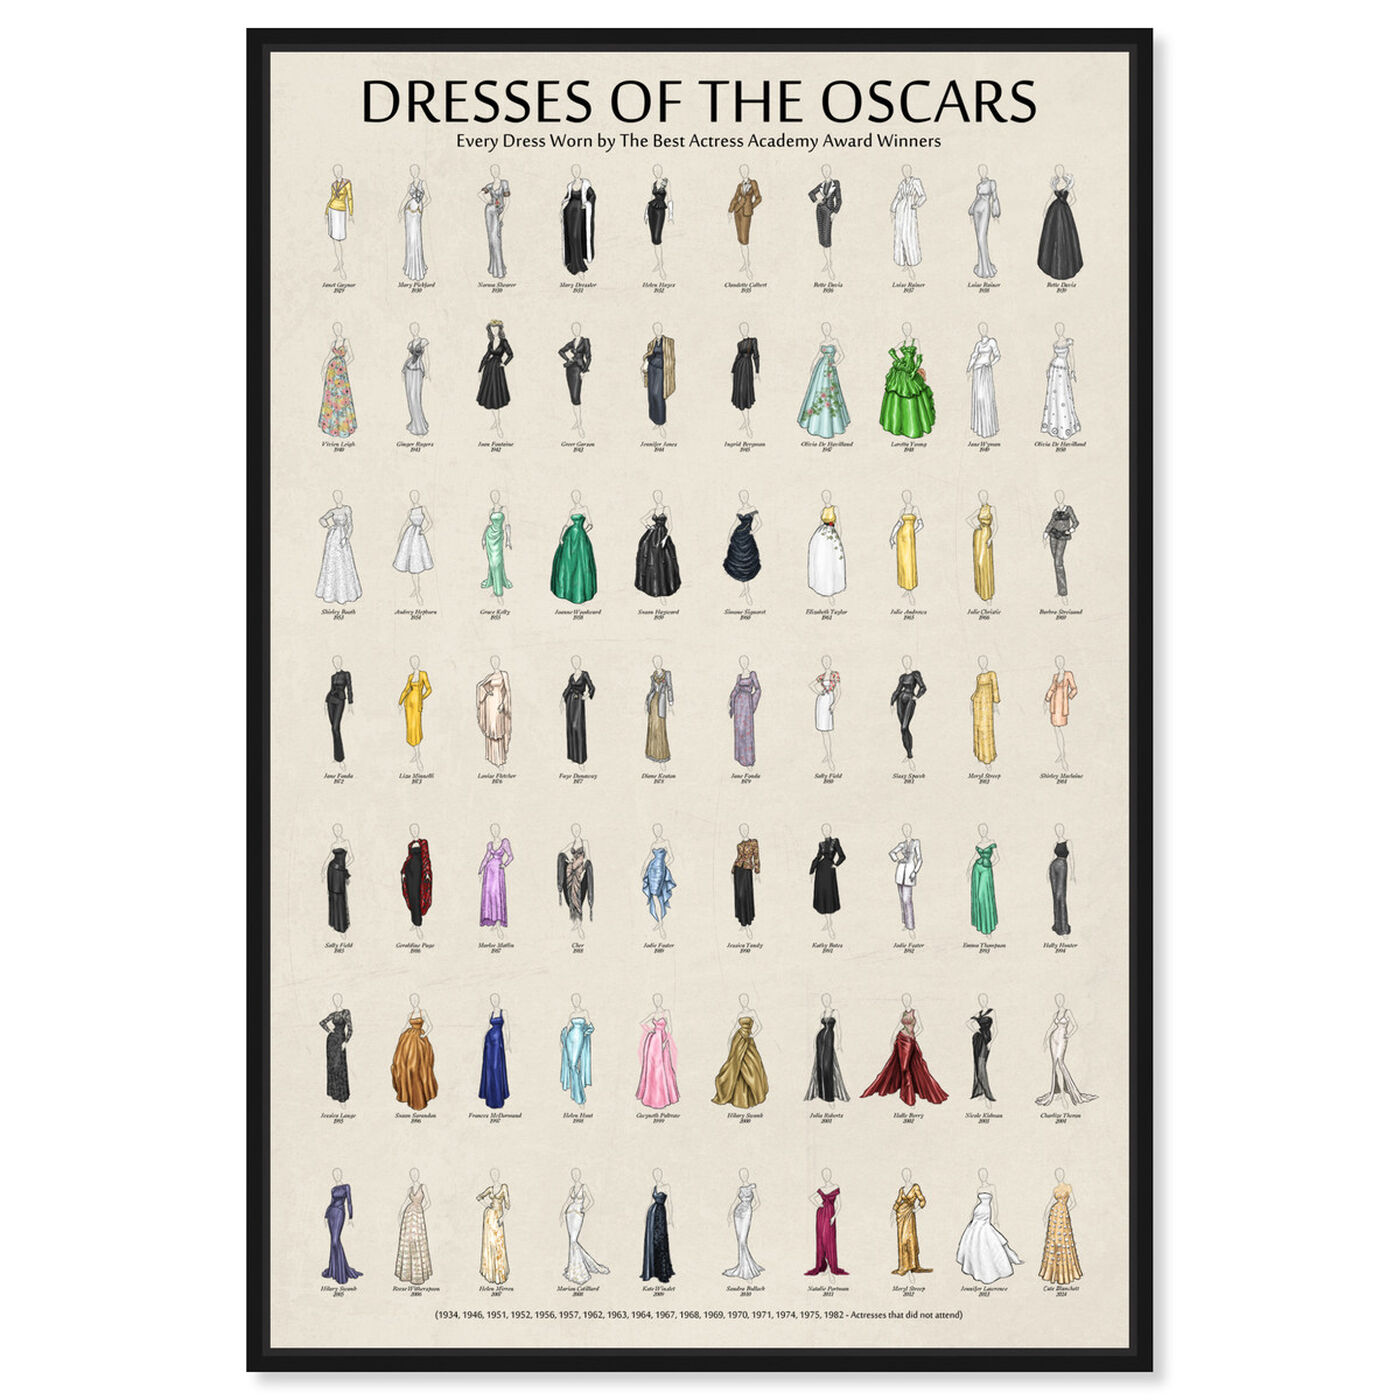 Front view of Oscar Dress Chart featuring fashion and glam and dress art.